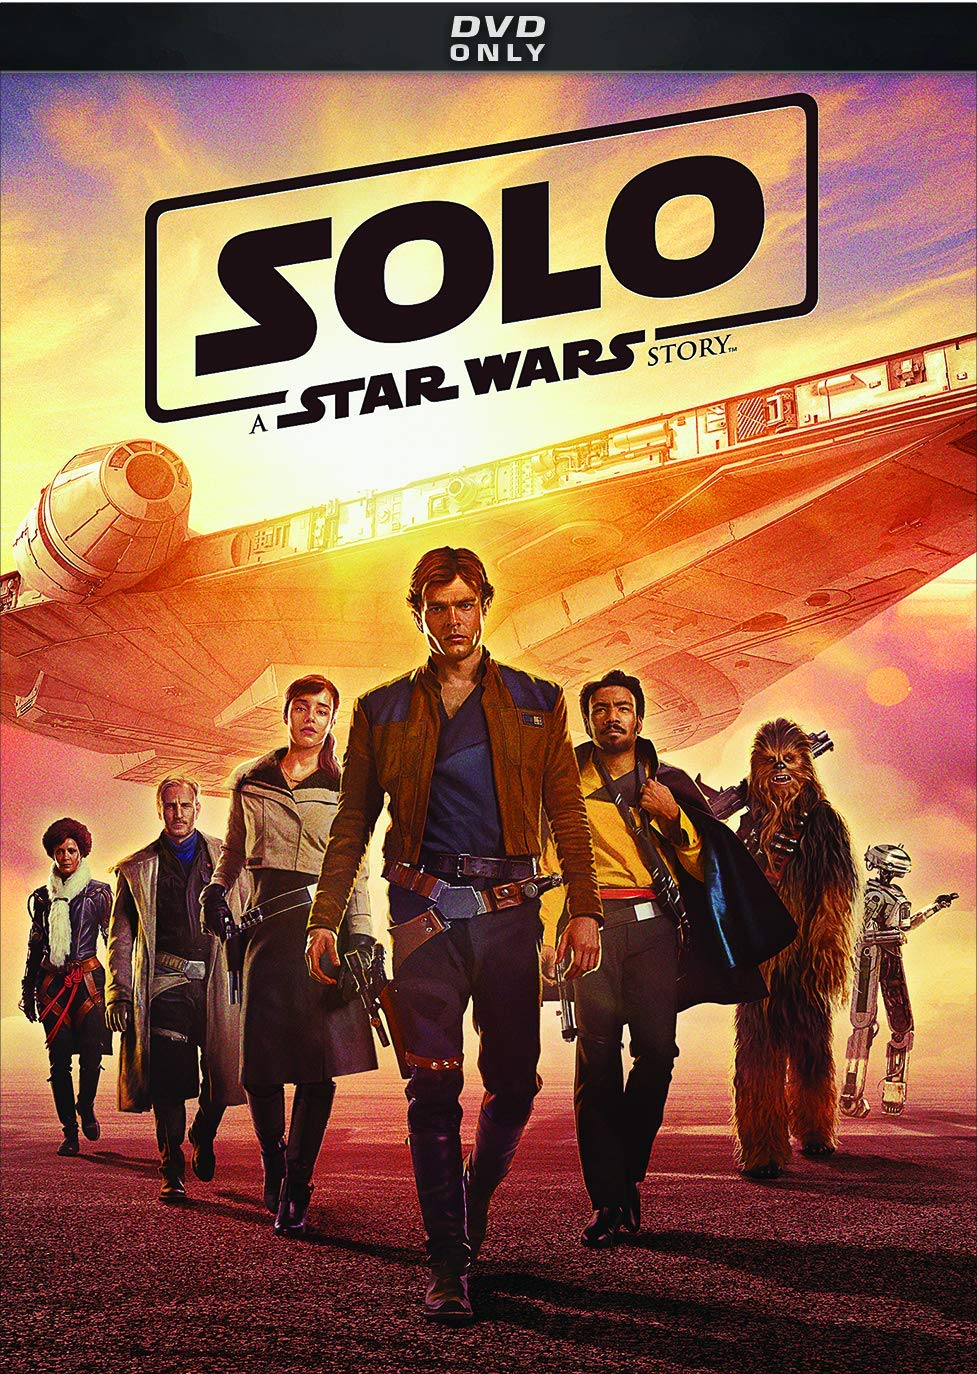 Han Solo leading a group in formation.